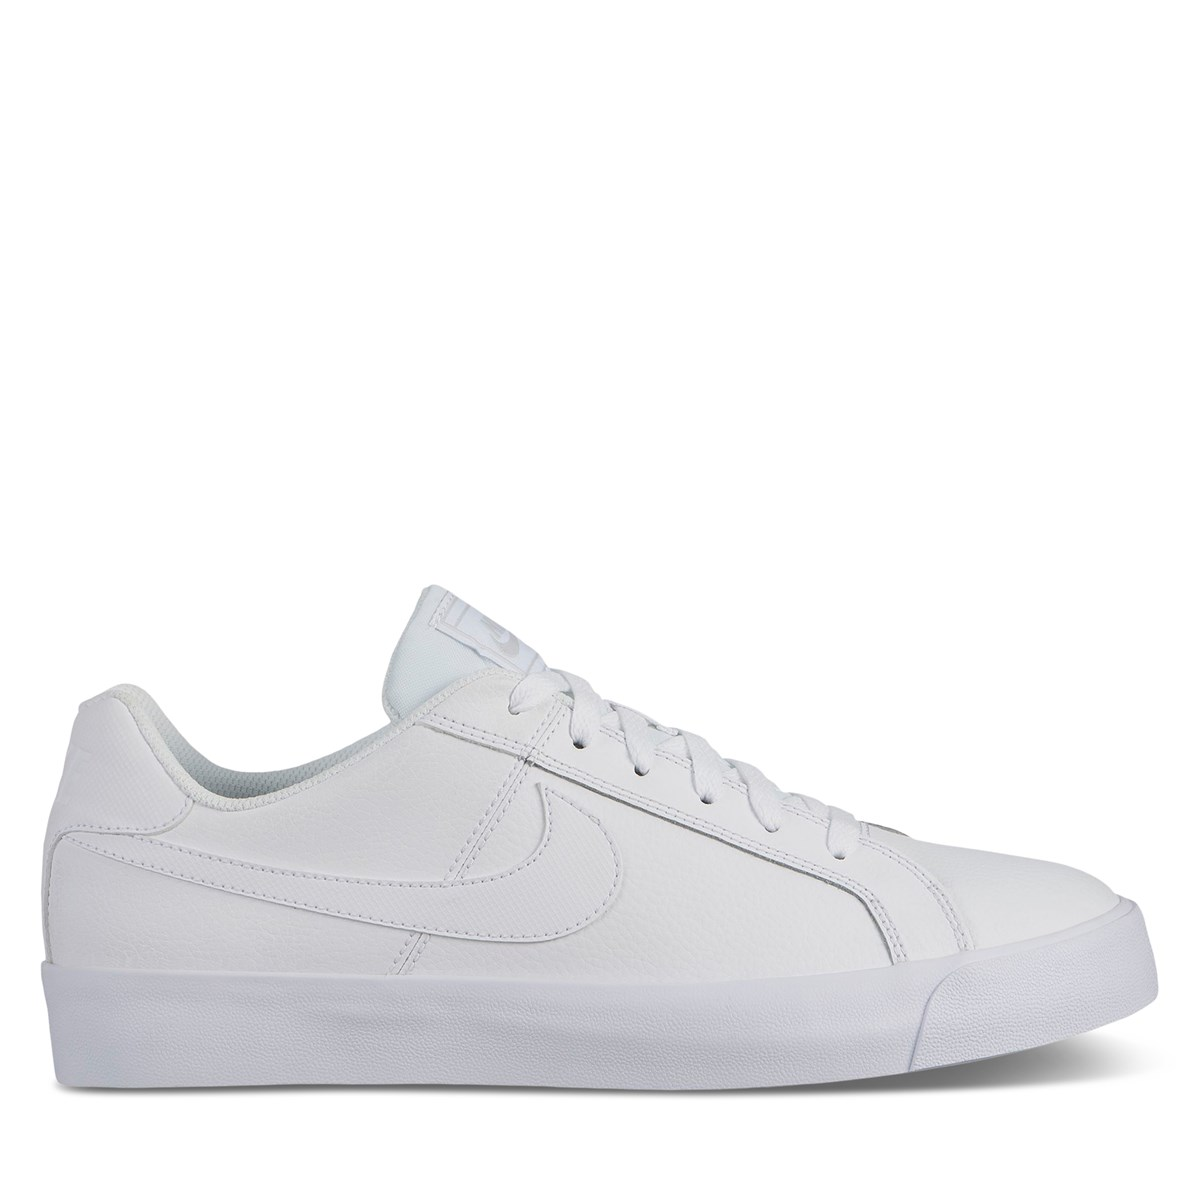 Men's Court Royale AC Sneakers in White